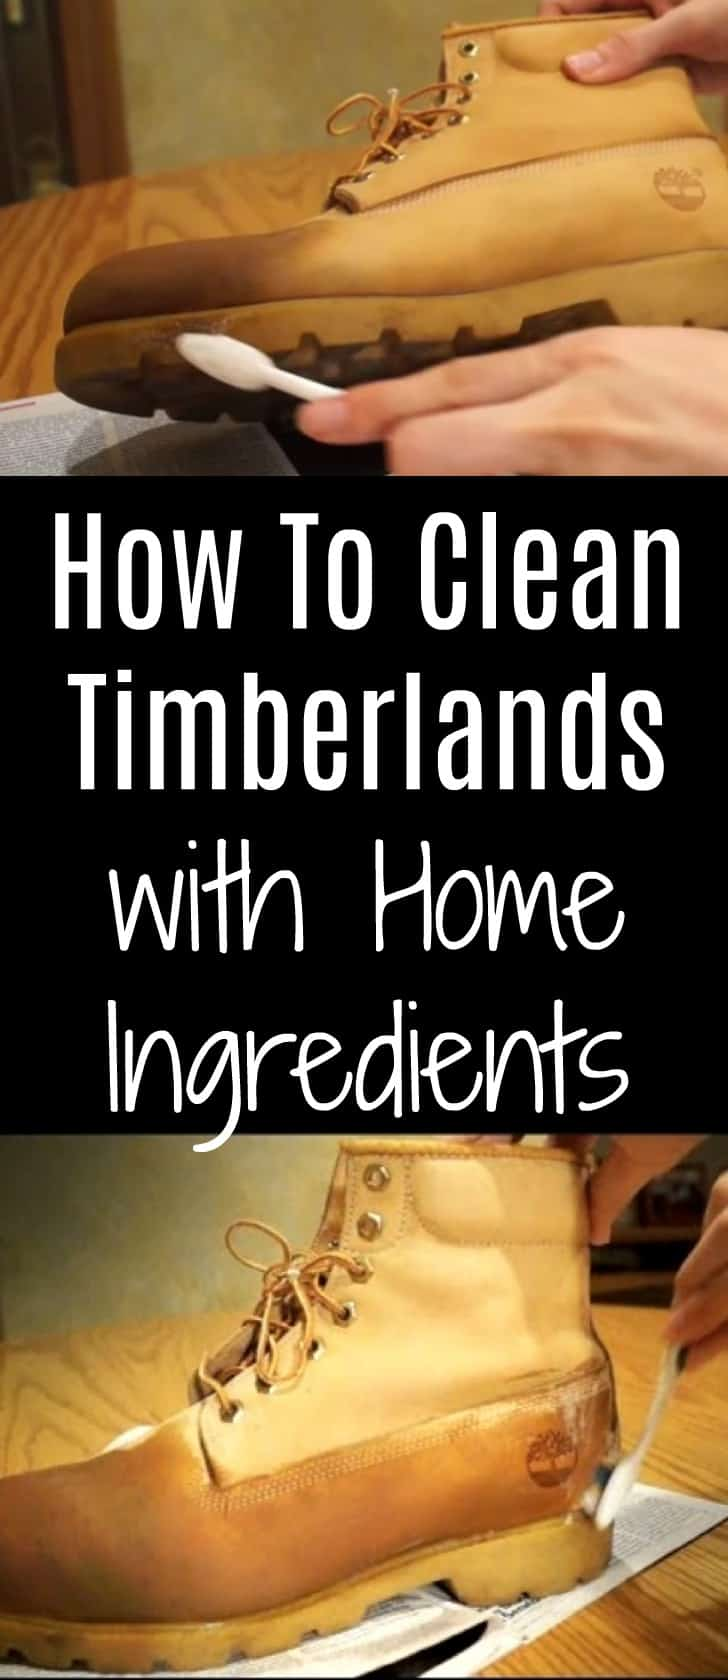 How To Clean Timberlands With Home Ingredients